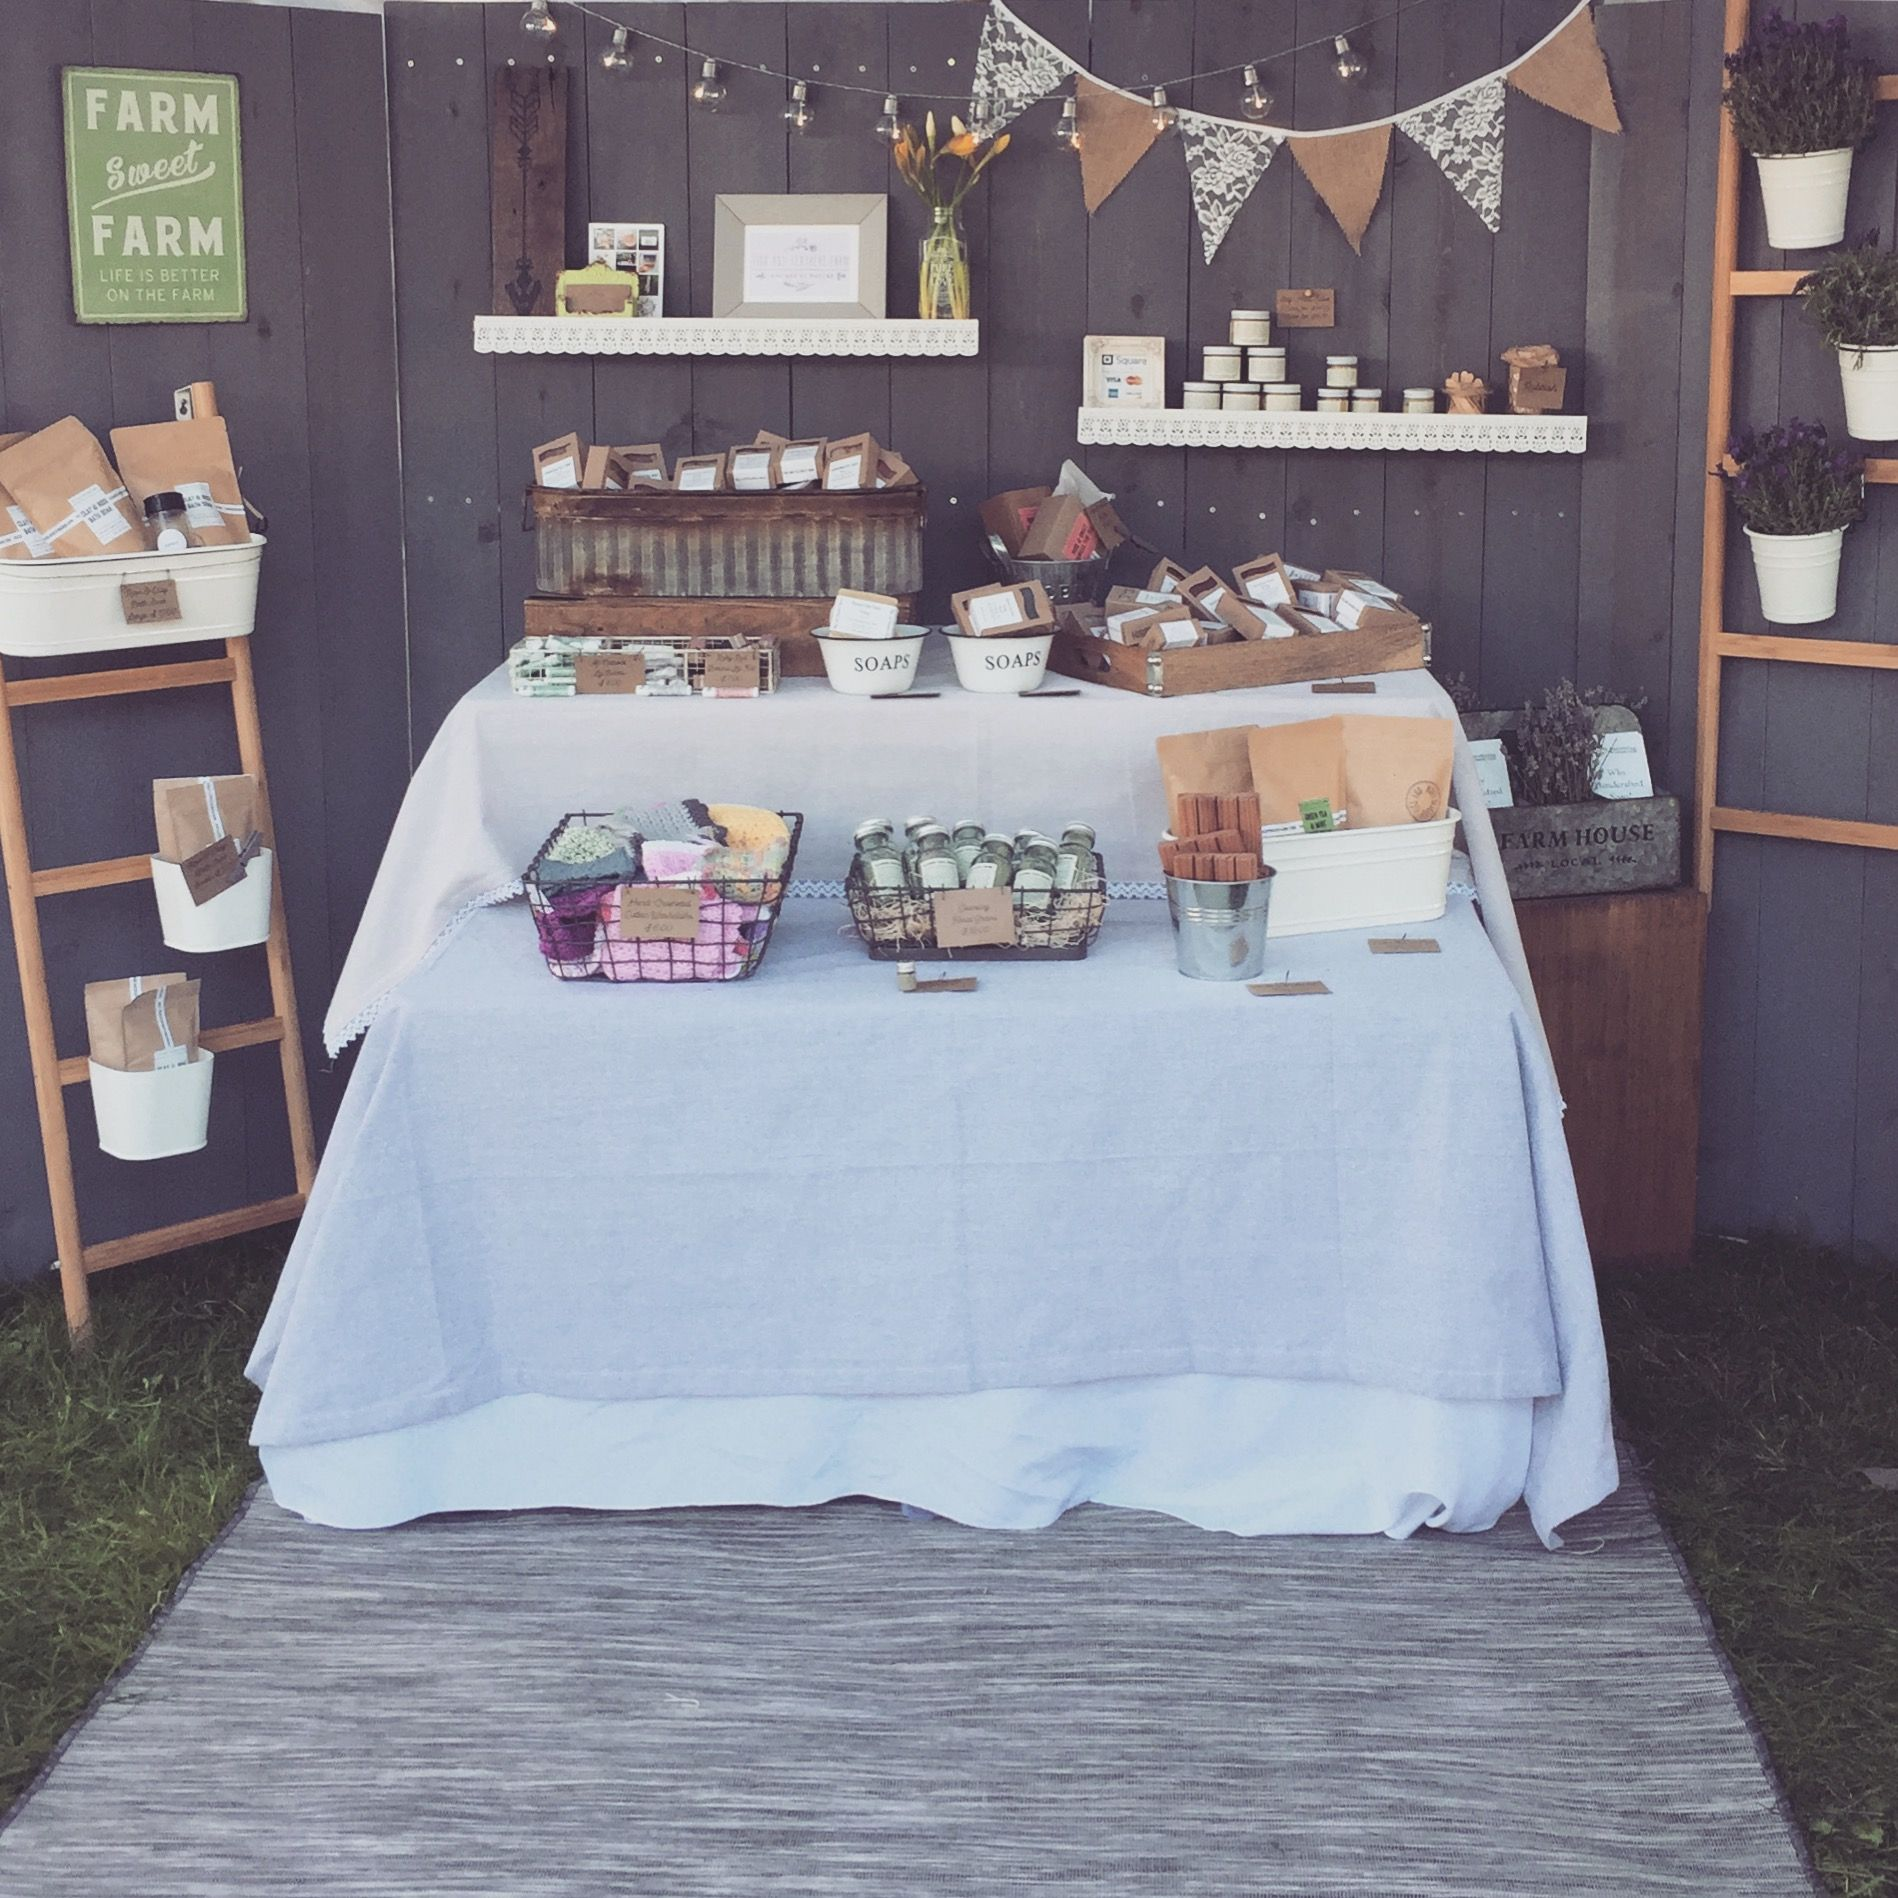 Figs and Feathers Farm booth display. #farmhouse #rustic #soap ...